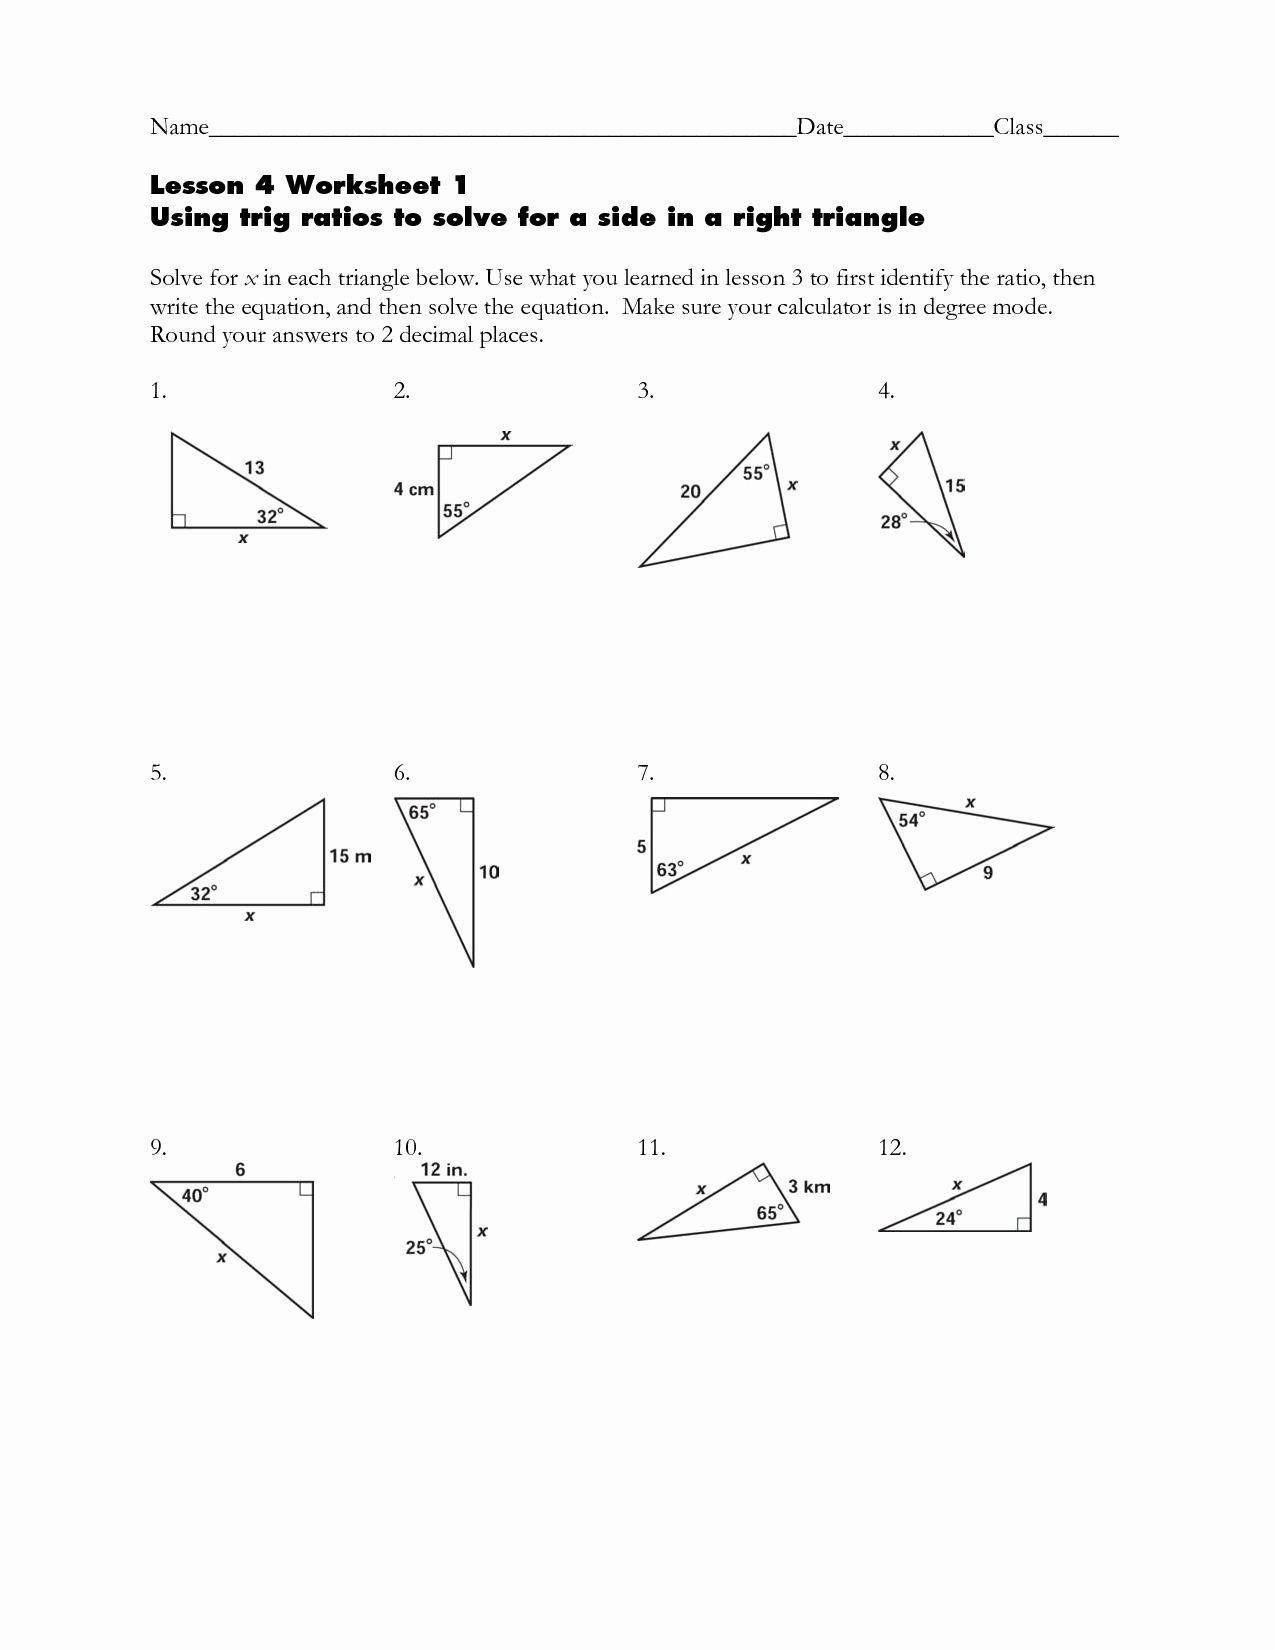 Right Triangle Trigonometry Worksheet Answers New Right Triangles And Trigonometry Worksheet The In 2020 Trigonometry Worksheets Word Problem Worksheets Word Problems